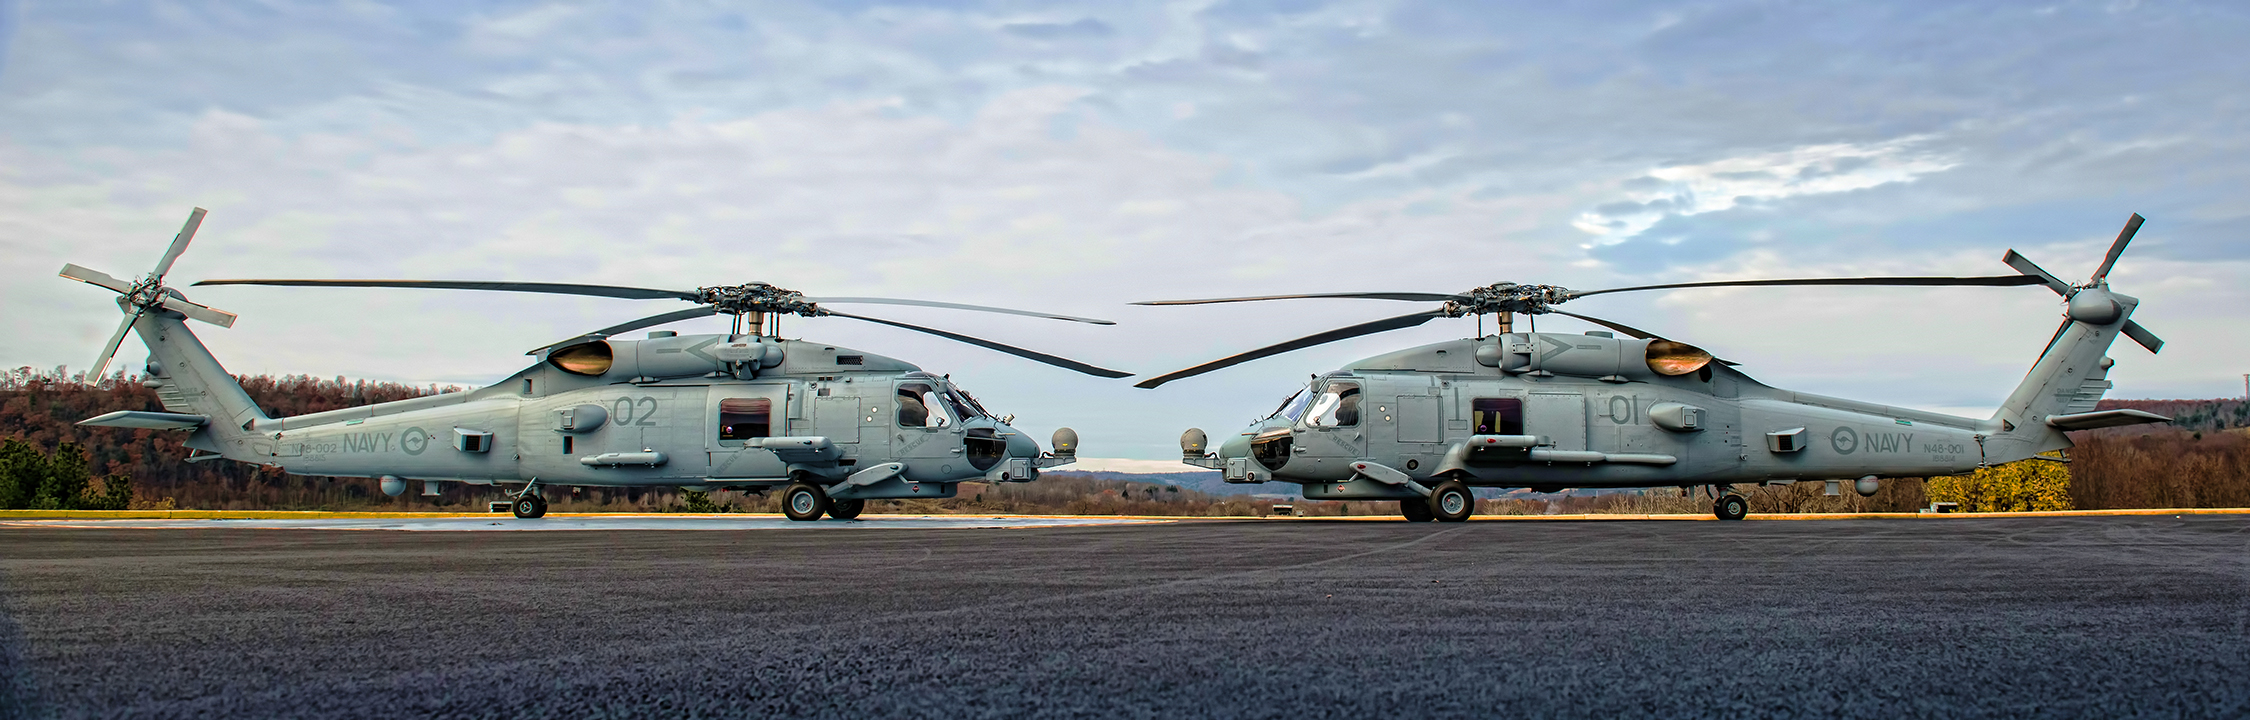 Aussie Navy Gets MH-60R Choppers